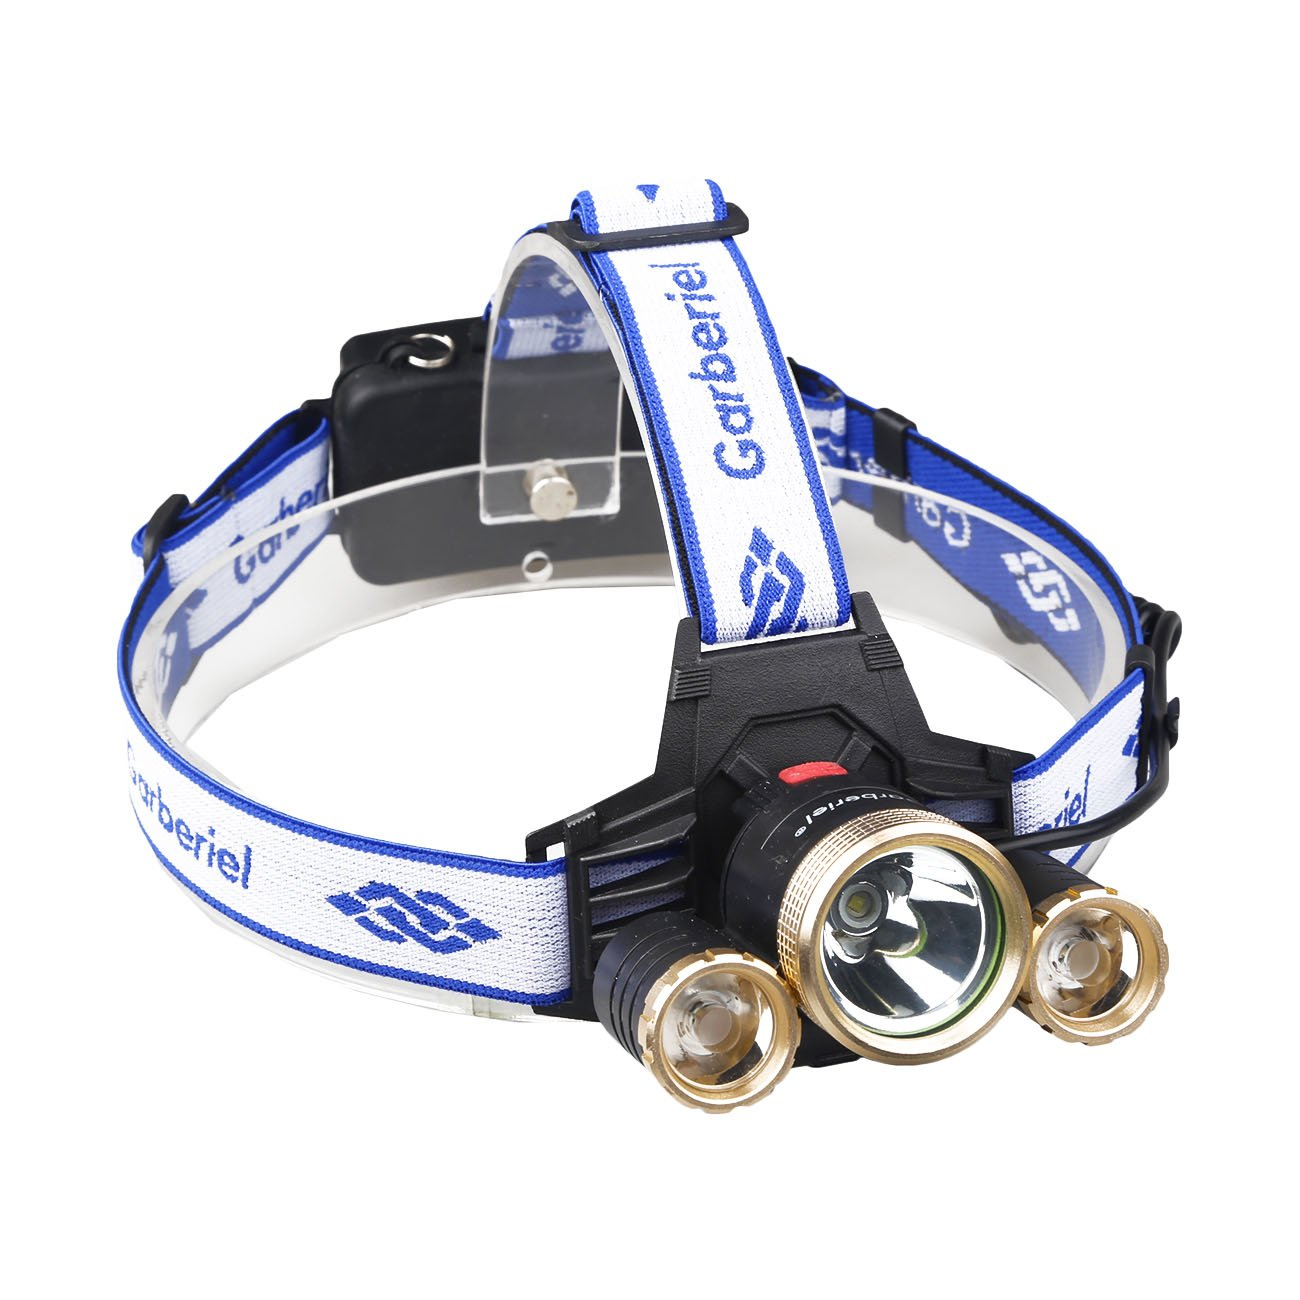 ShineTool Adjustable Rechargeable LED Headlamp 3 Modes, Zoomable and Waterproof Headlamp for Free Work, Hiking, Camping, Climbing, Running and Adventure by ShineTool (Image #5)